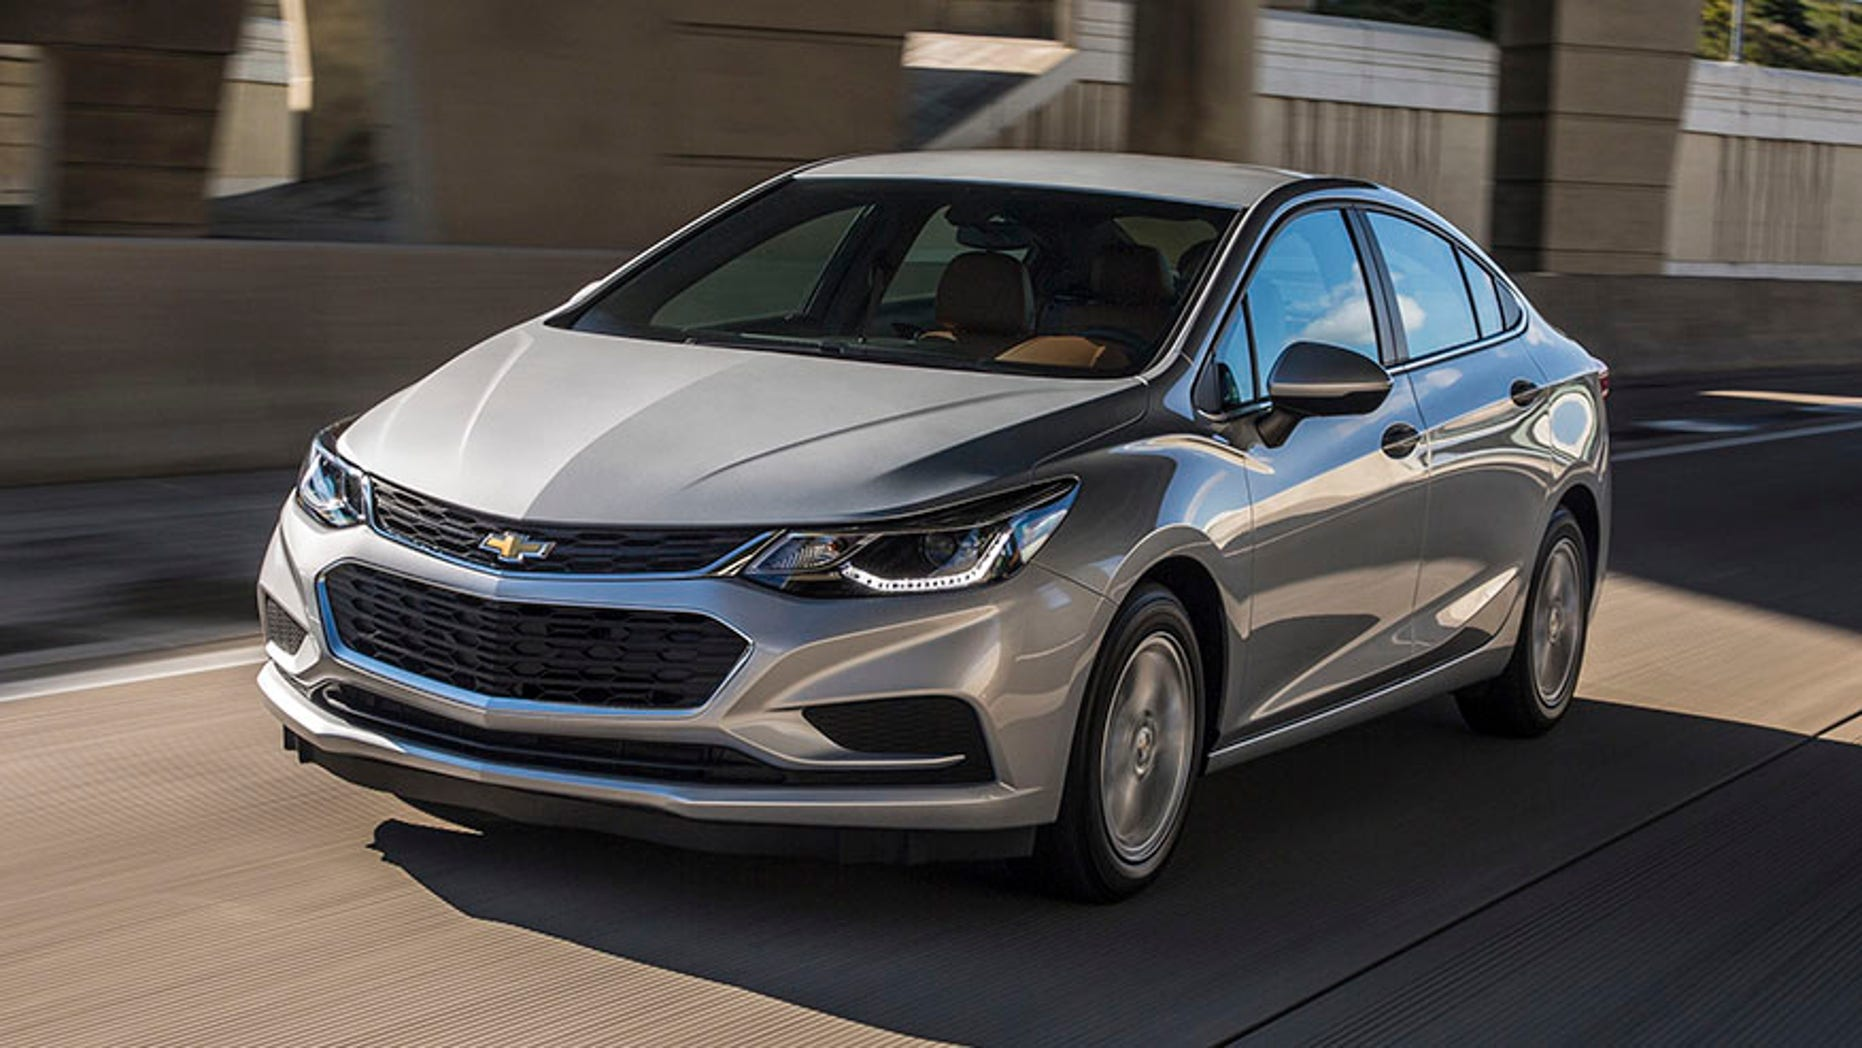 2017 Chevrolet Cruze diesel test drive | Fox News